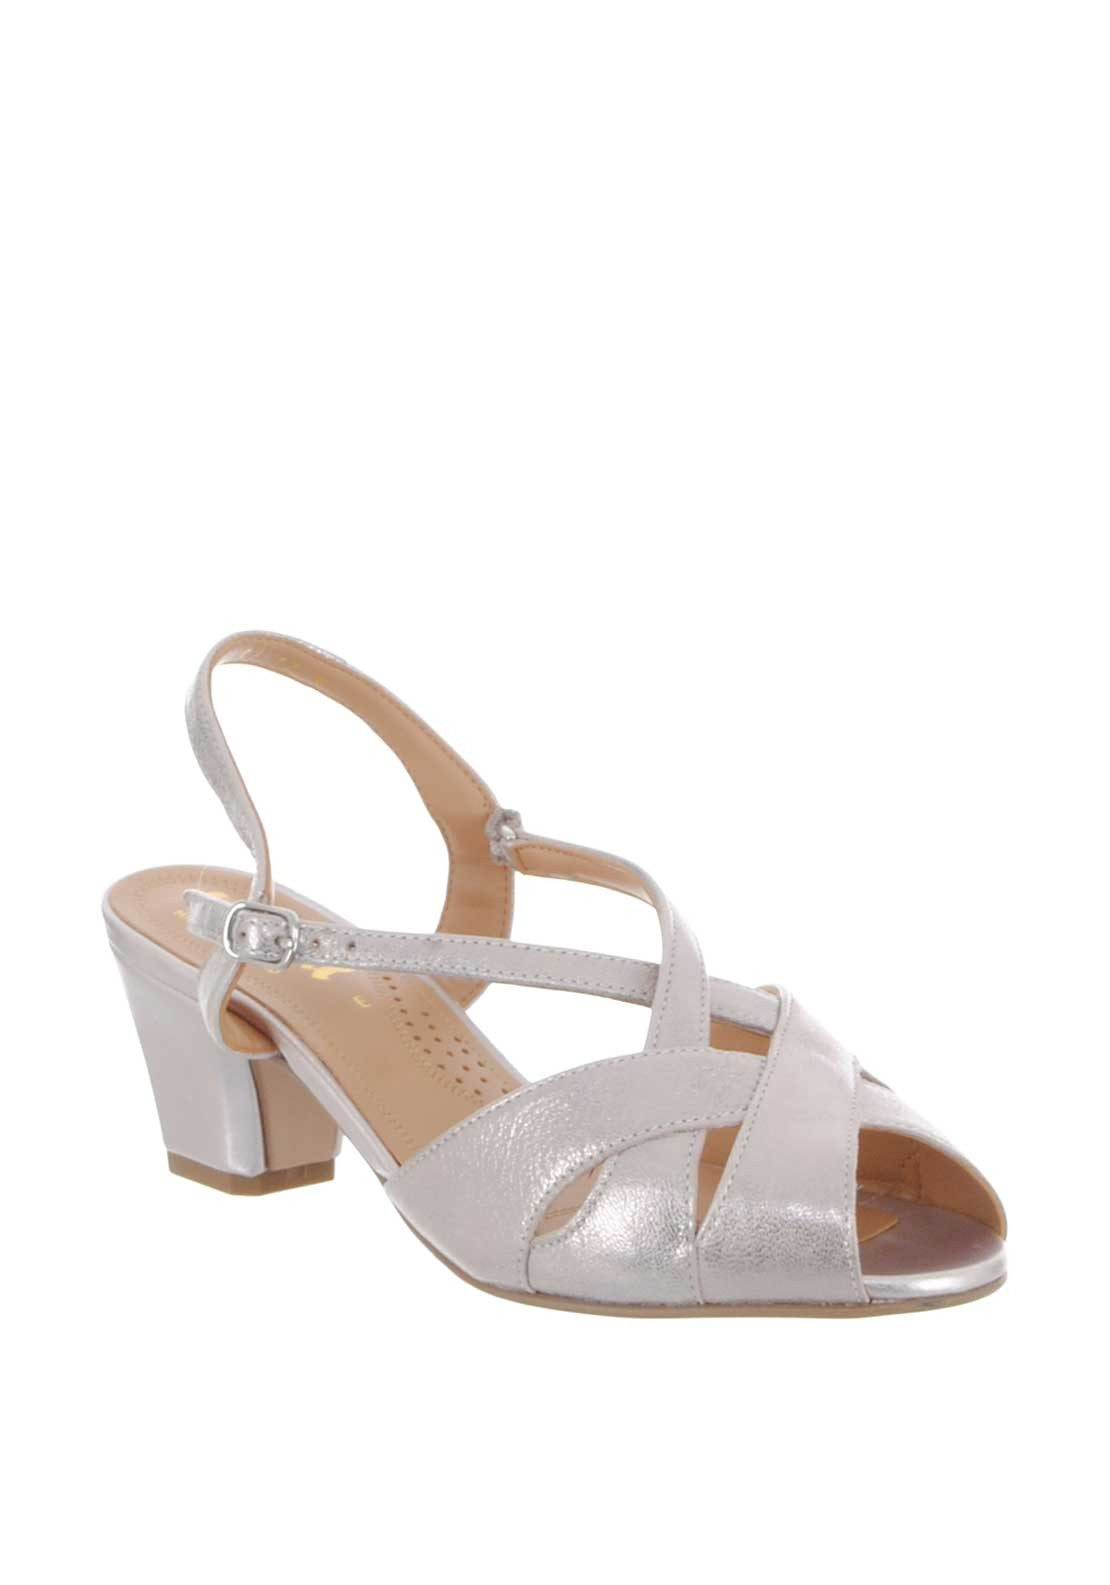 f91eecb7d5f74 Van Dal Libby Leather Patent Sandals, Pink. Be the first to review this  product